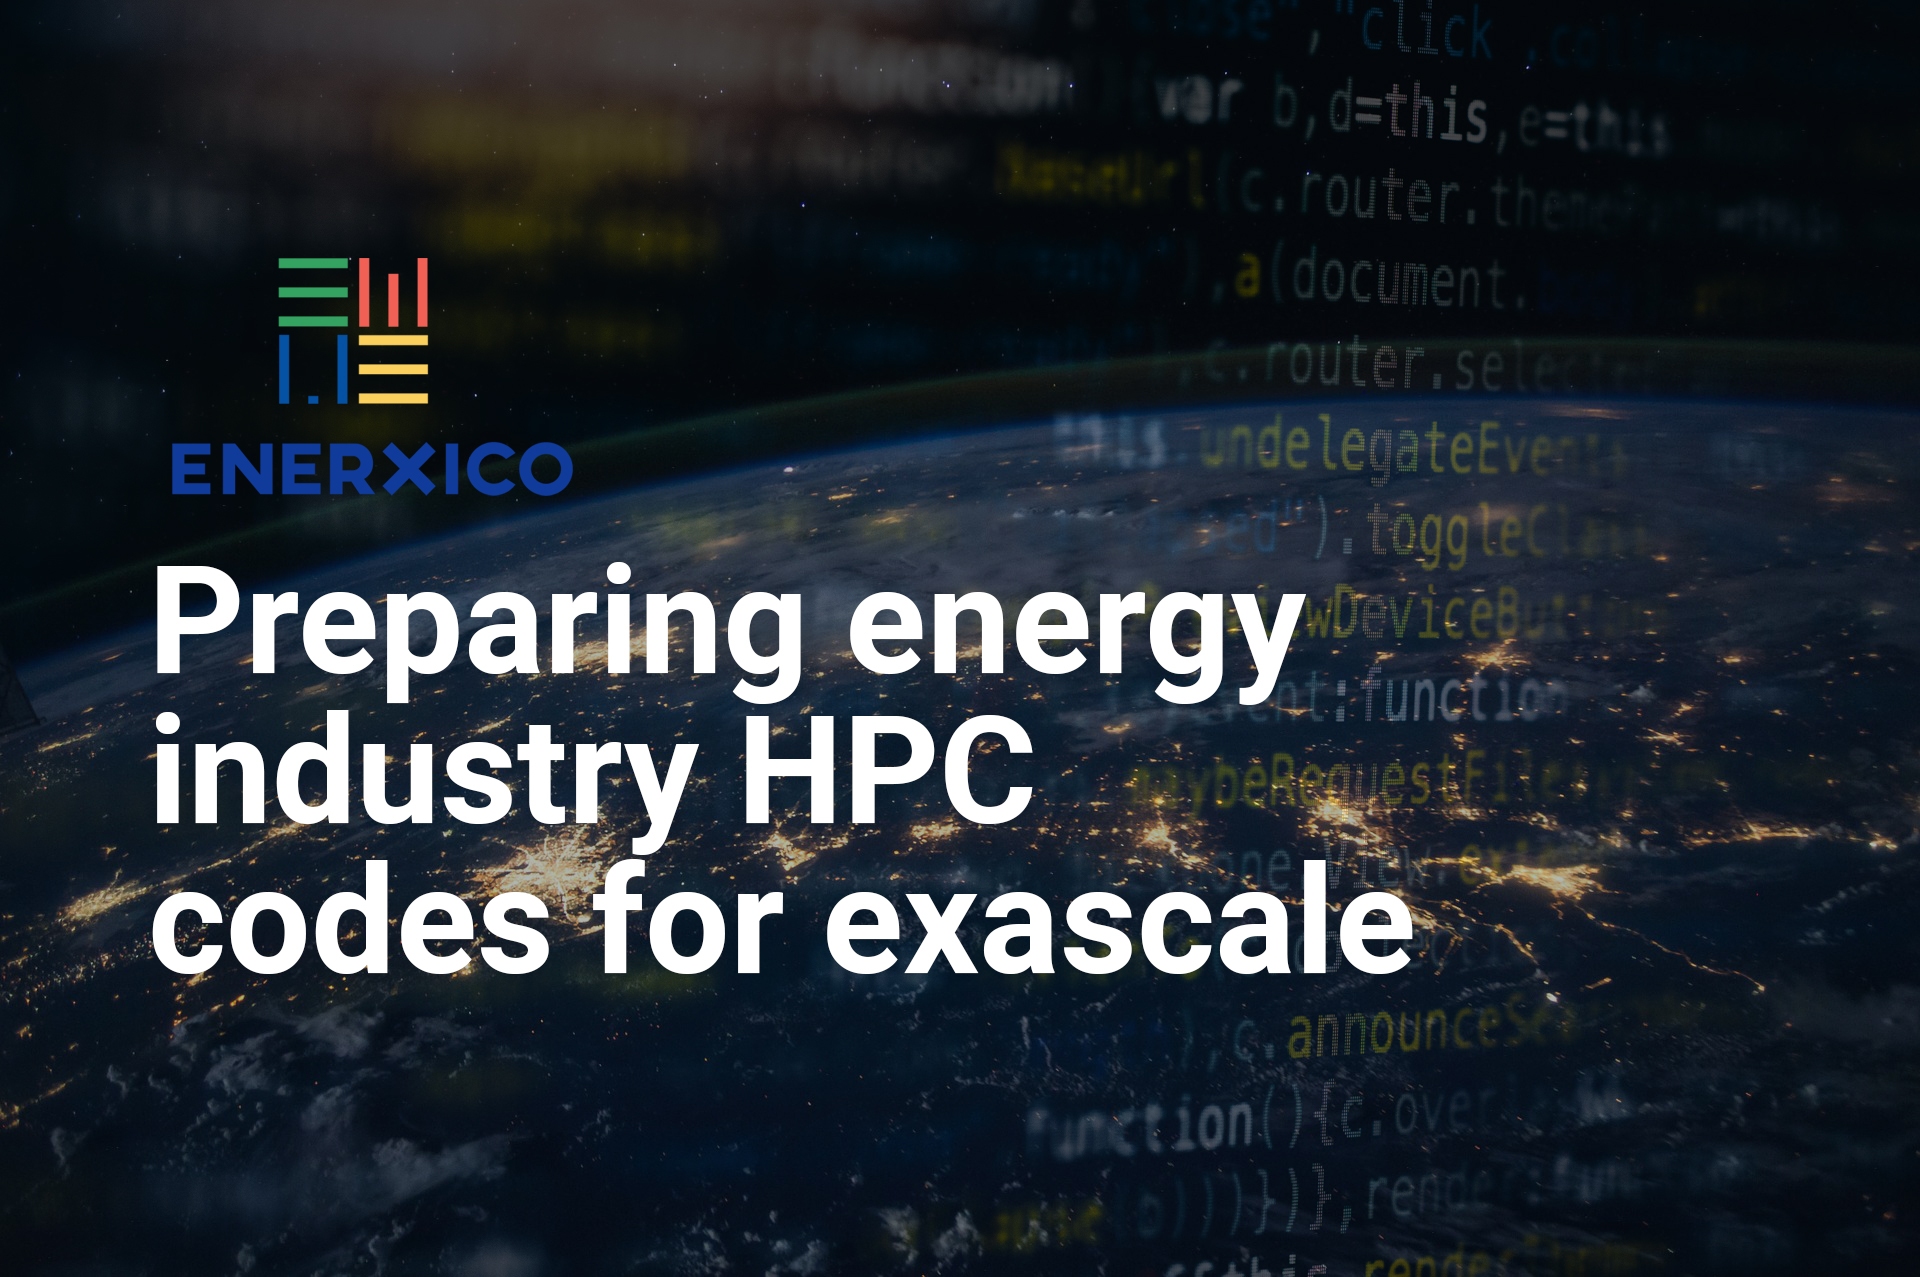 Preparing energy industry HPC codes for exascale